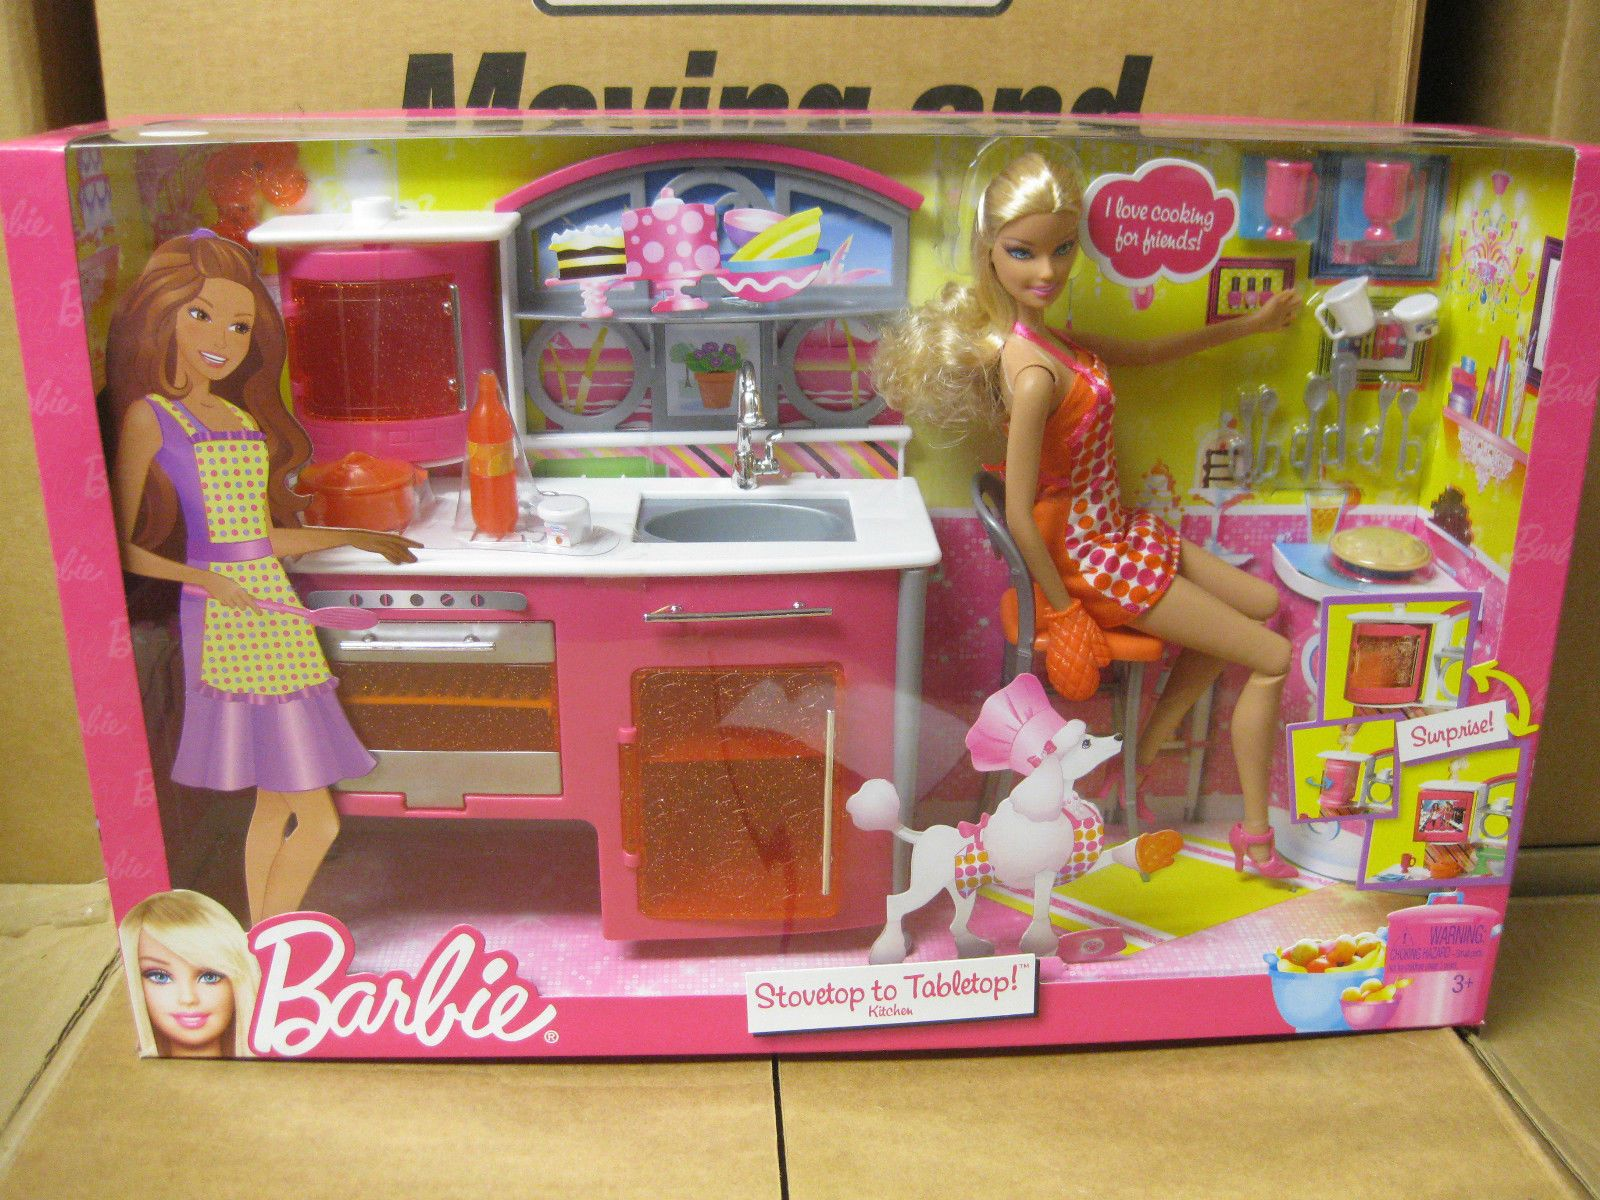 Barbie Stovetop To Tabletop Kitchen Playset By Mattel 2011